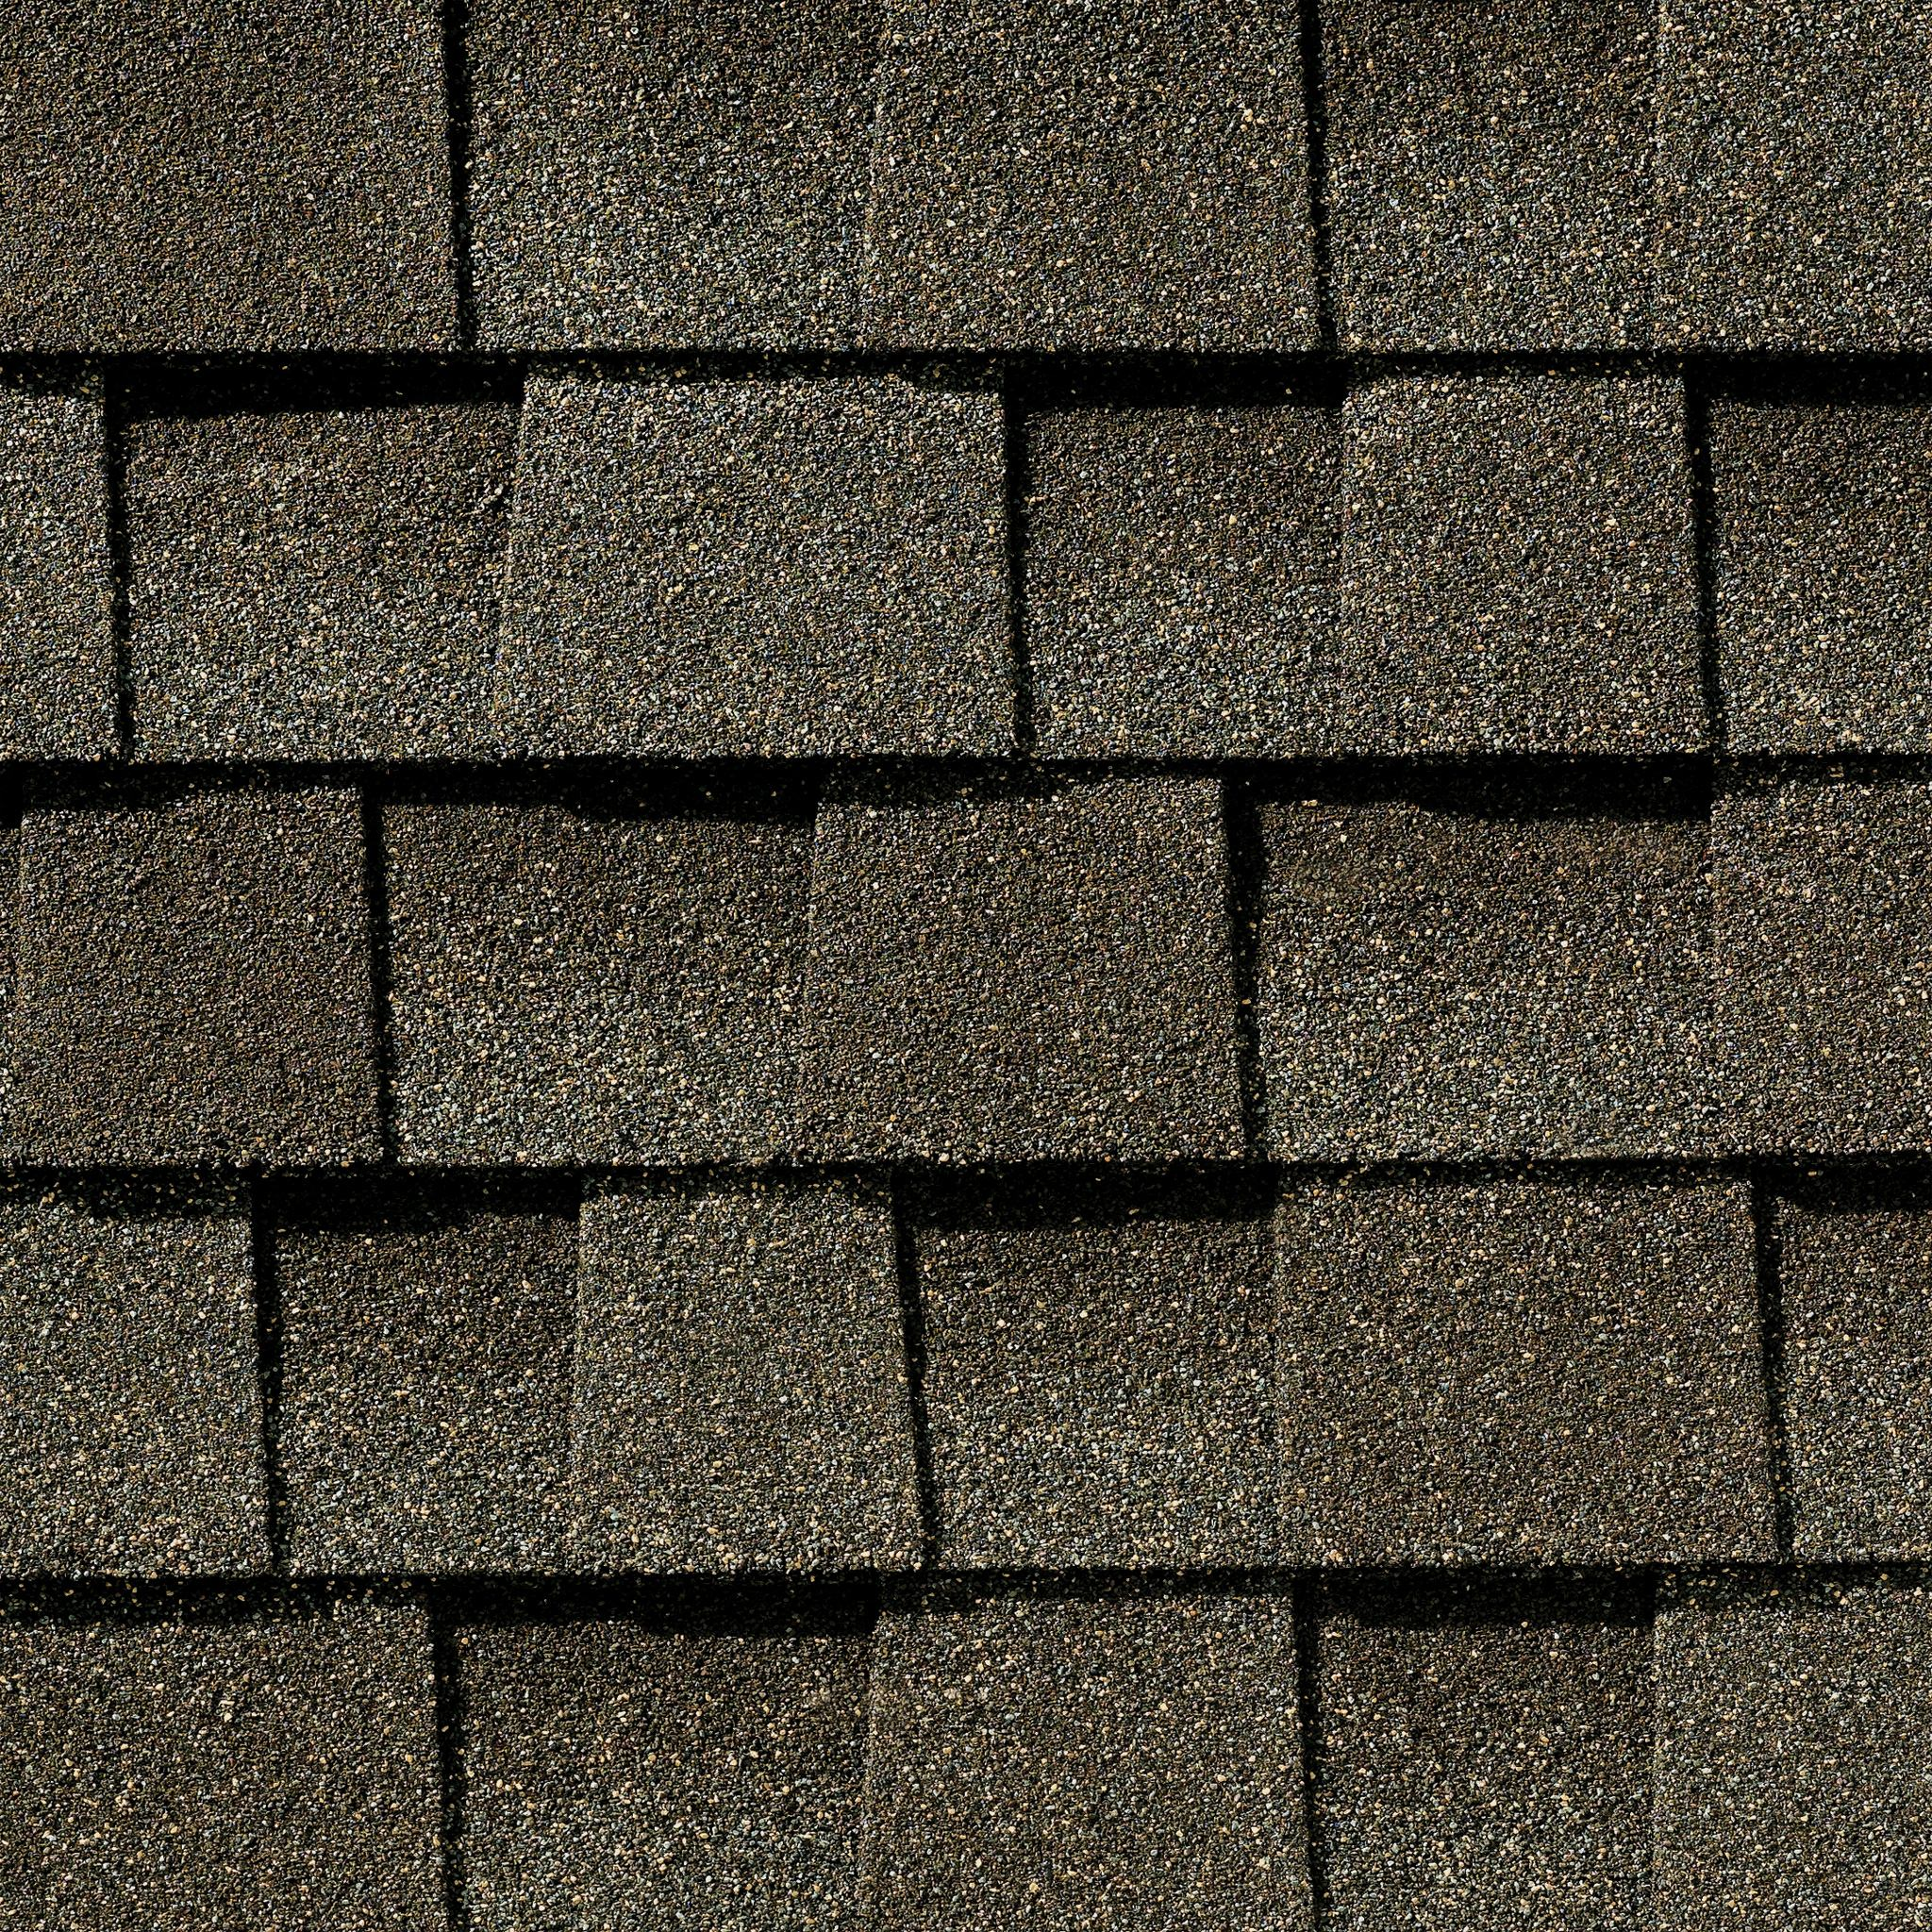 Close up photo of GAF's Timberline Natural Shadow Weathered Wood shingle swatch